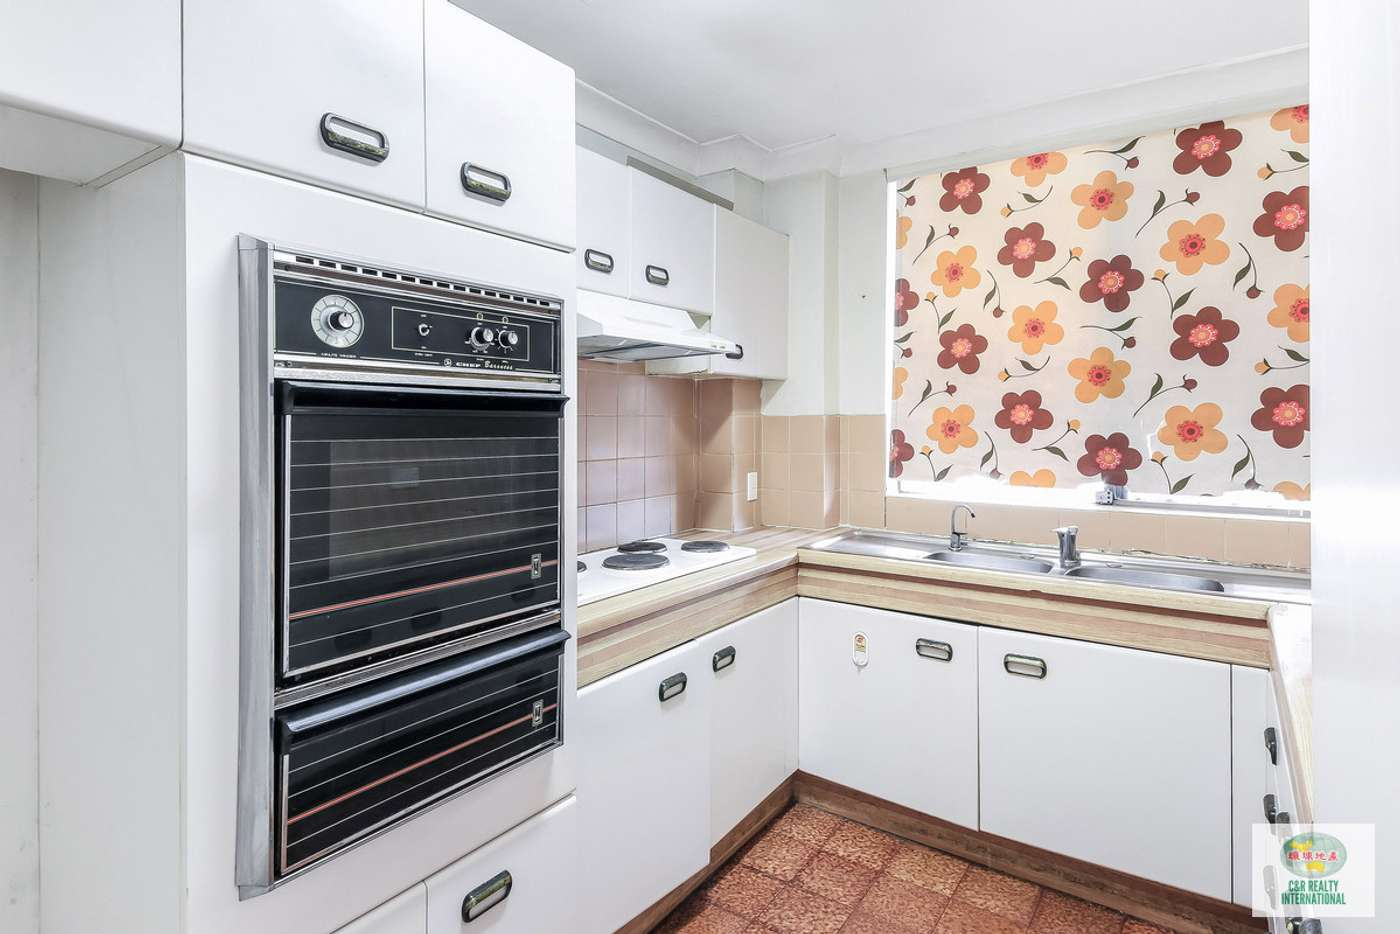 Main view of Homely apartment listing, 19/68 Great Western Highway, Parramatta NSW 2150